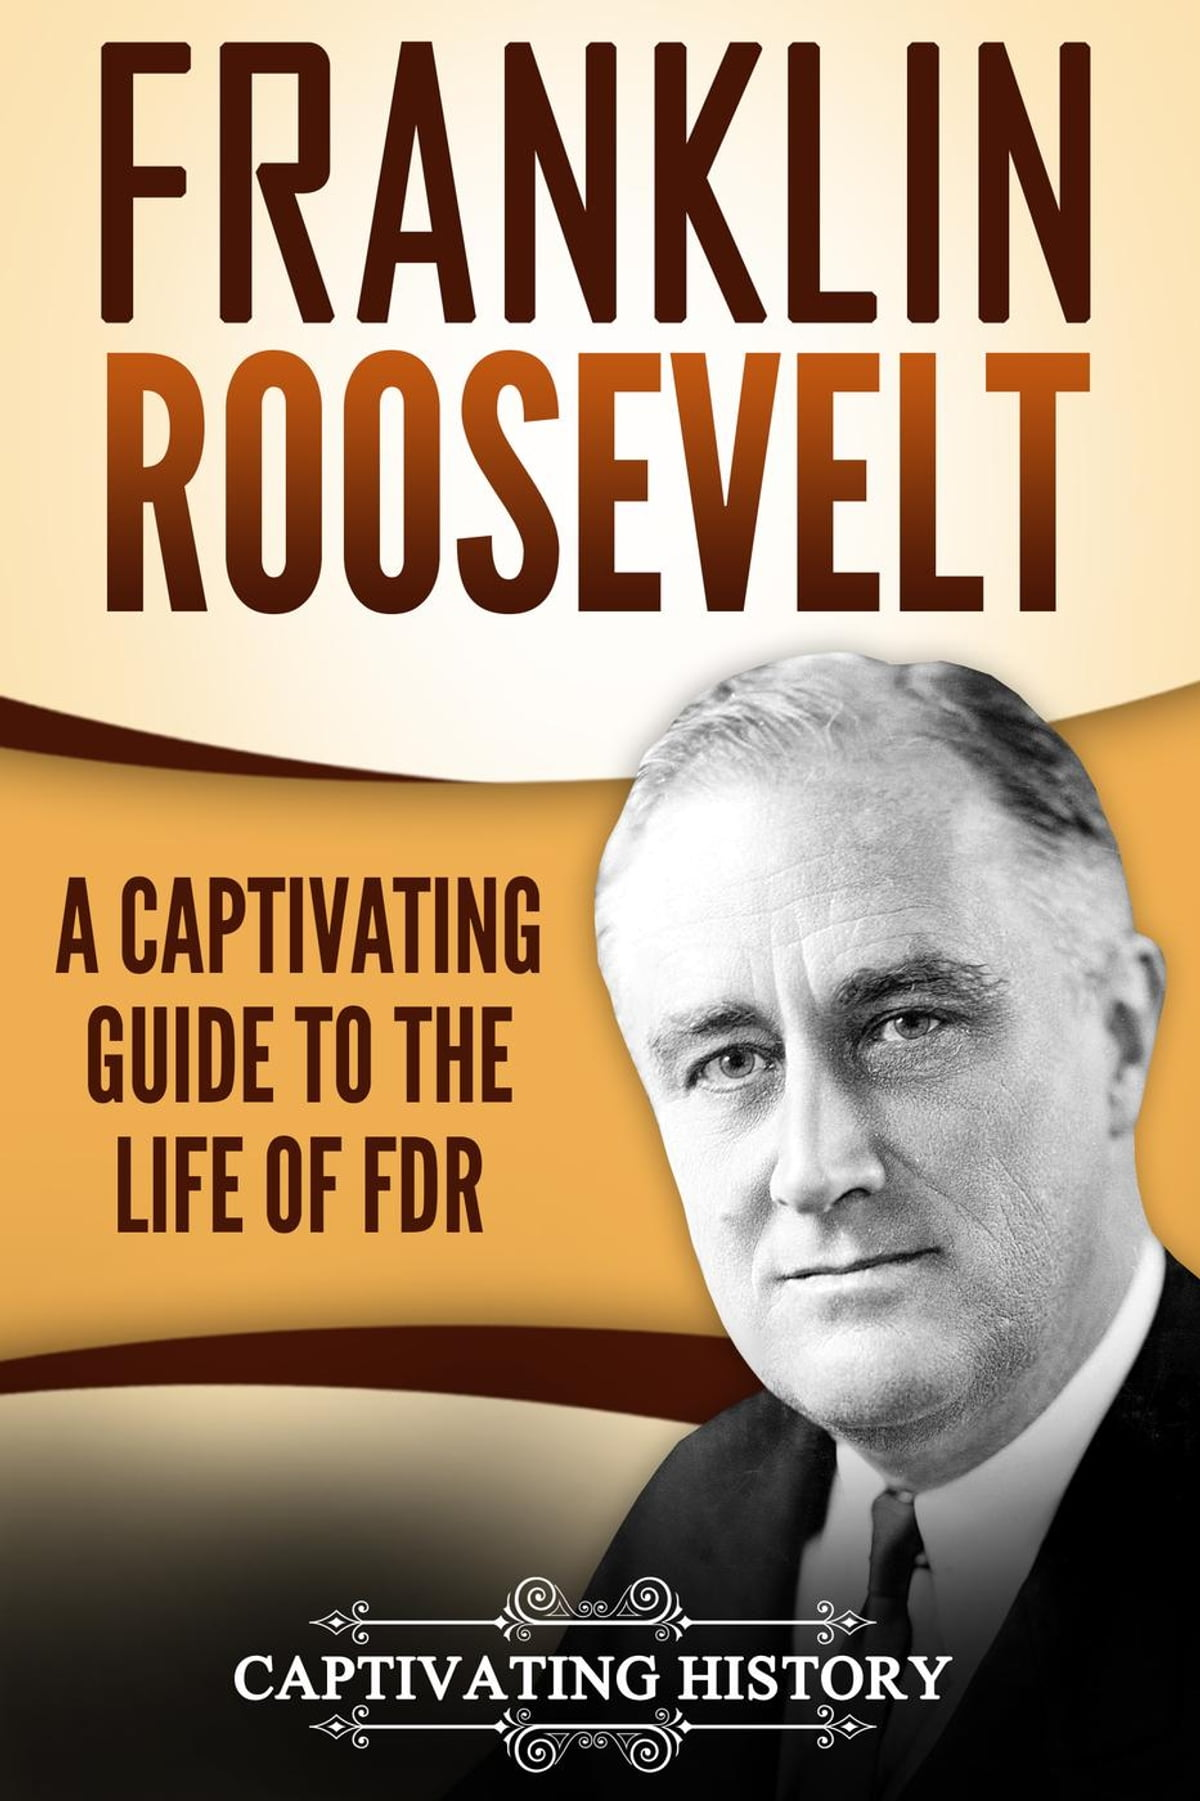 Franklin Roosevelt: A Captivating Guide to the Life of FDR eBook by  Captivating History - 9781540180322 | Rakuten Kobo